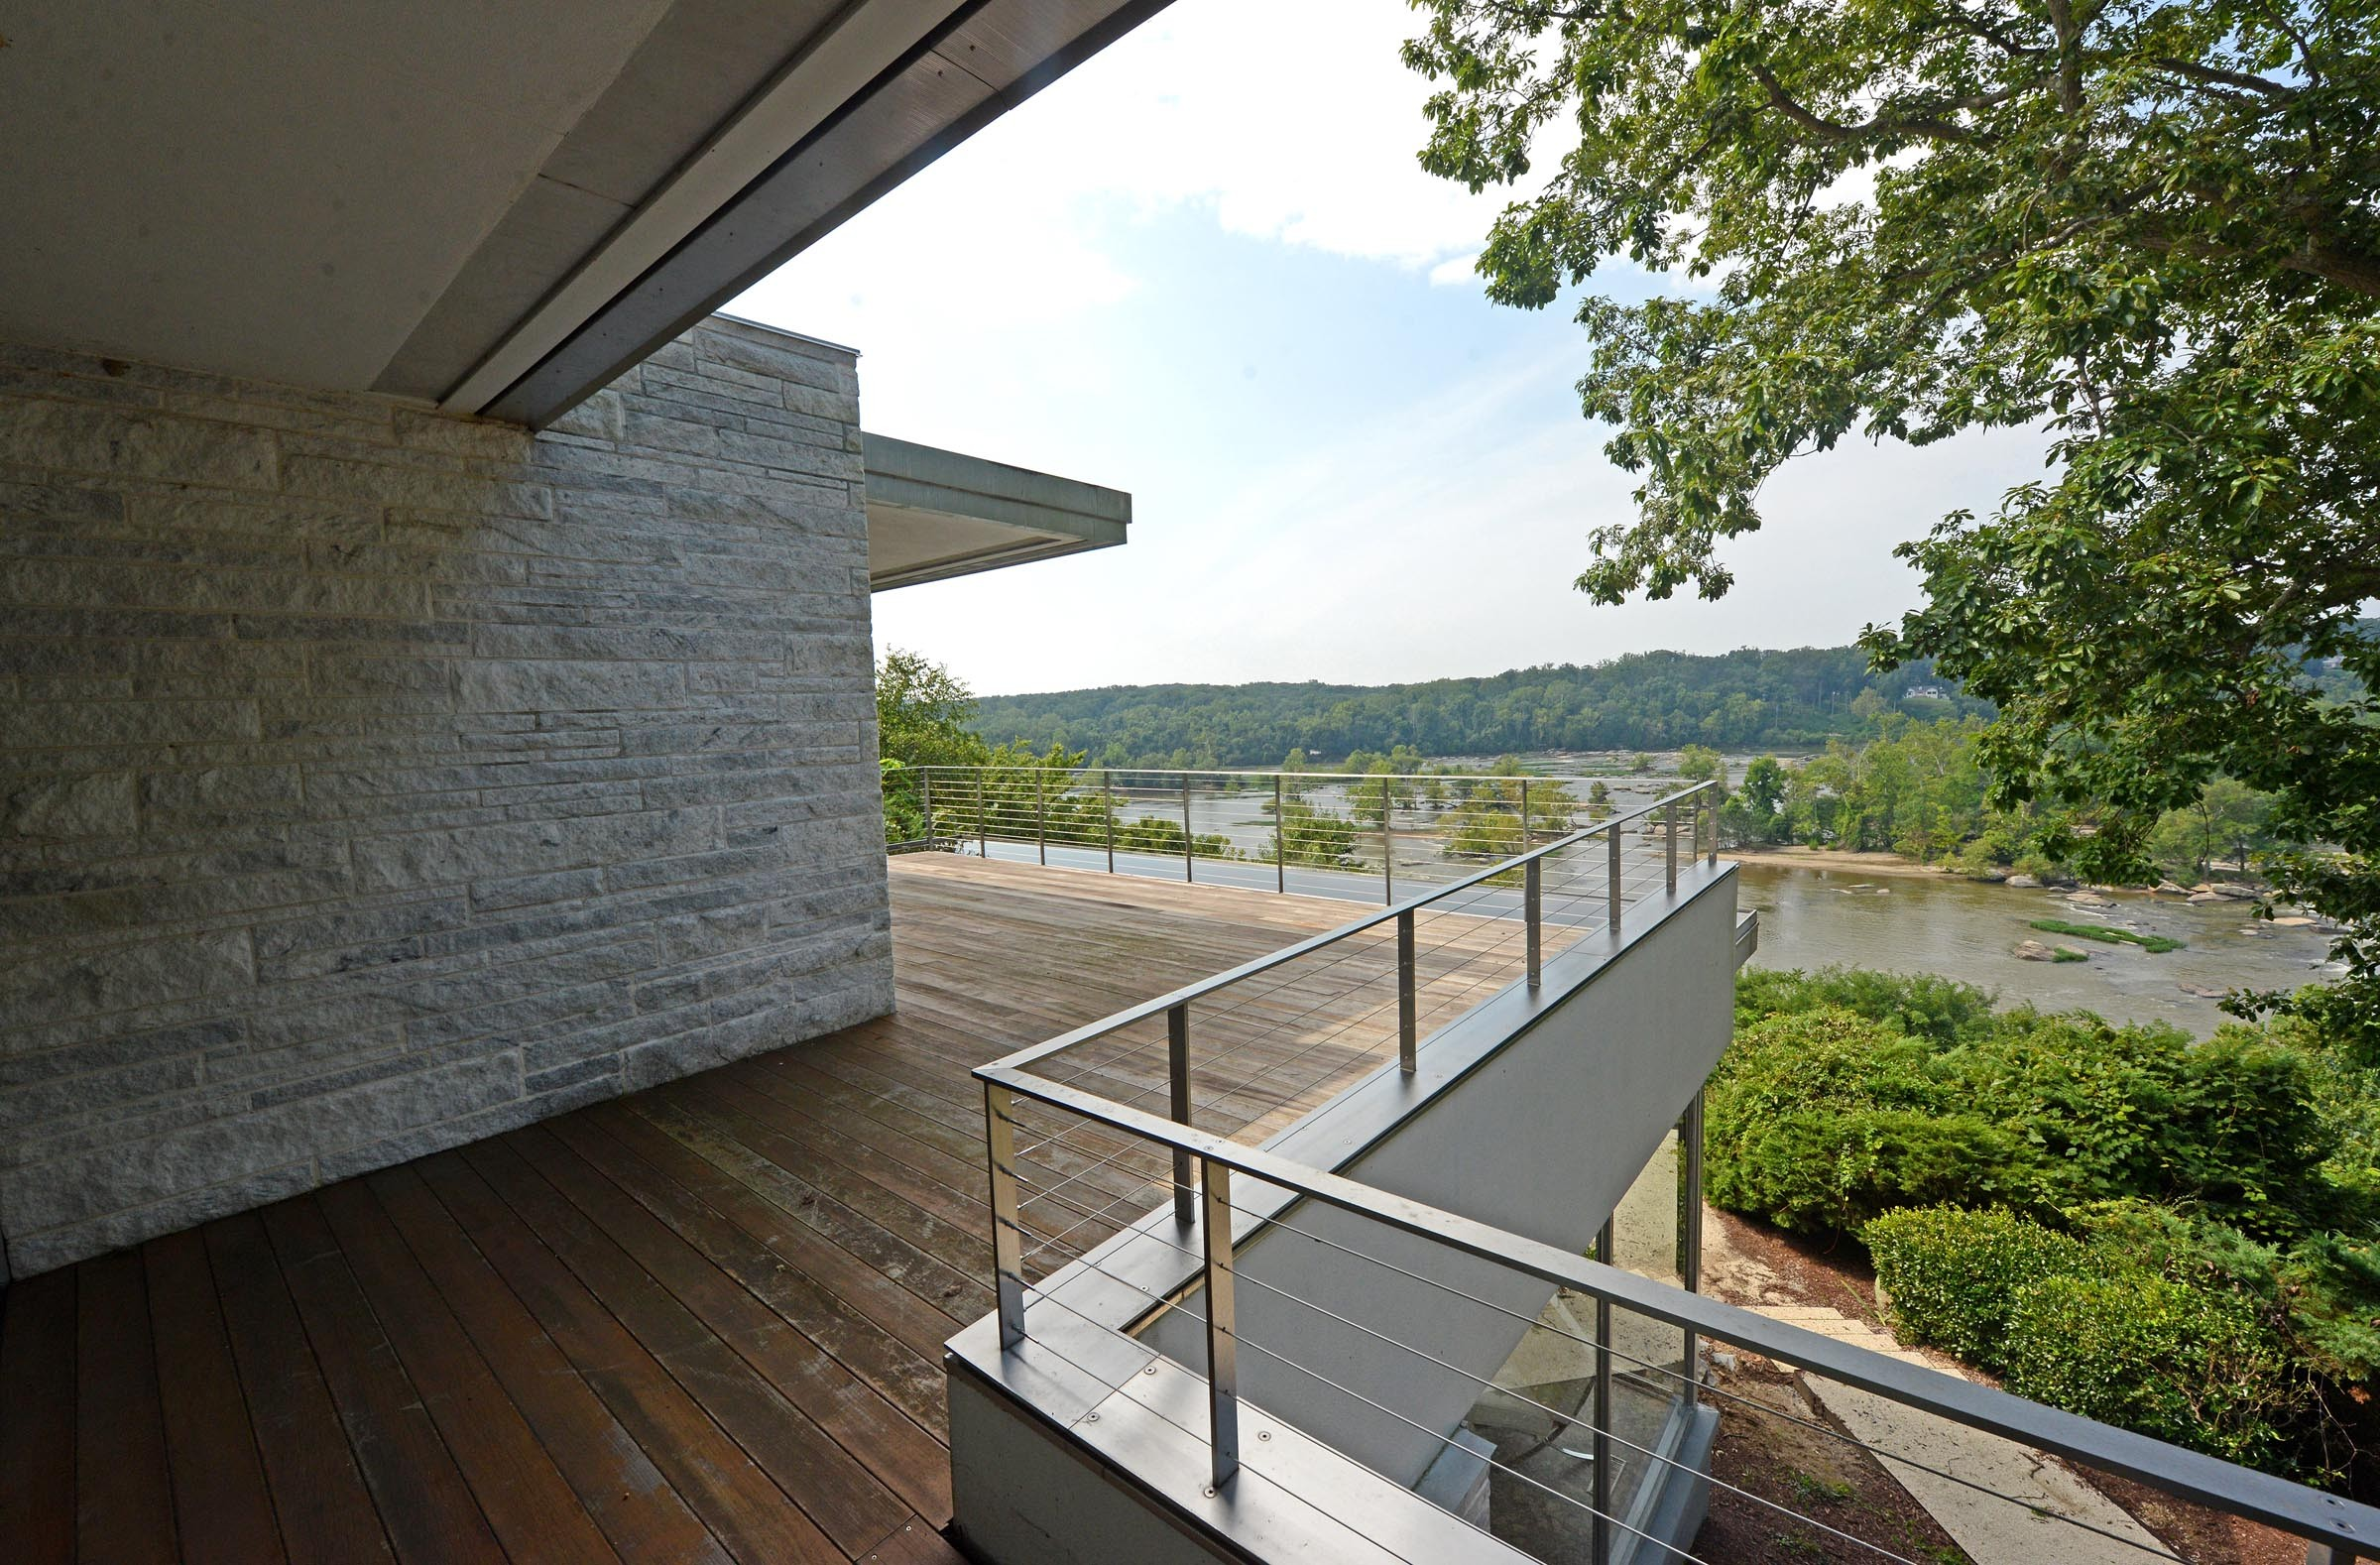 Renowned California architect Richard Neutra took full advantage of dramatic James River views. - SCOTT ELMQUIST